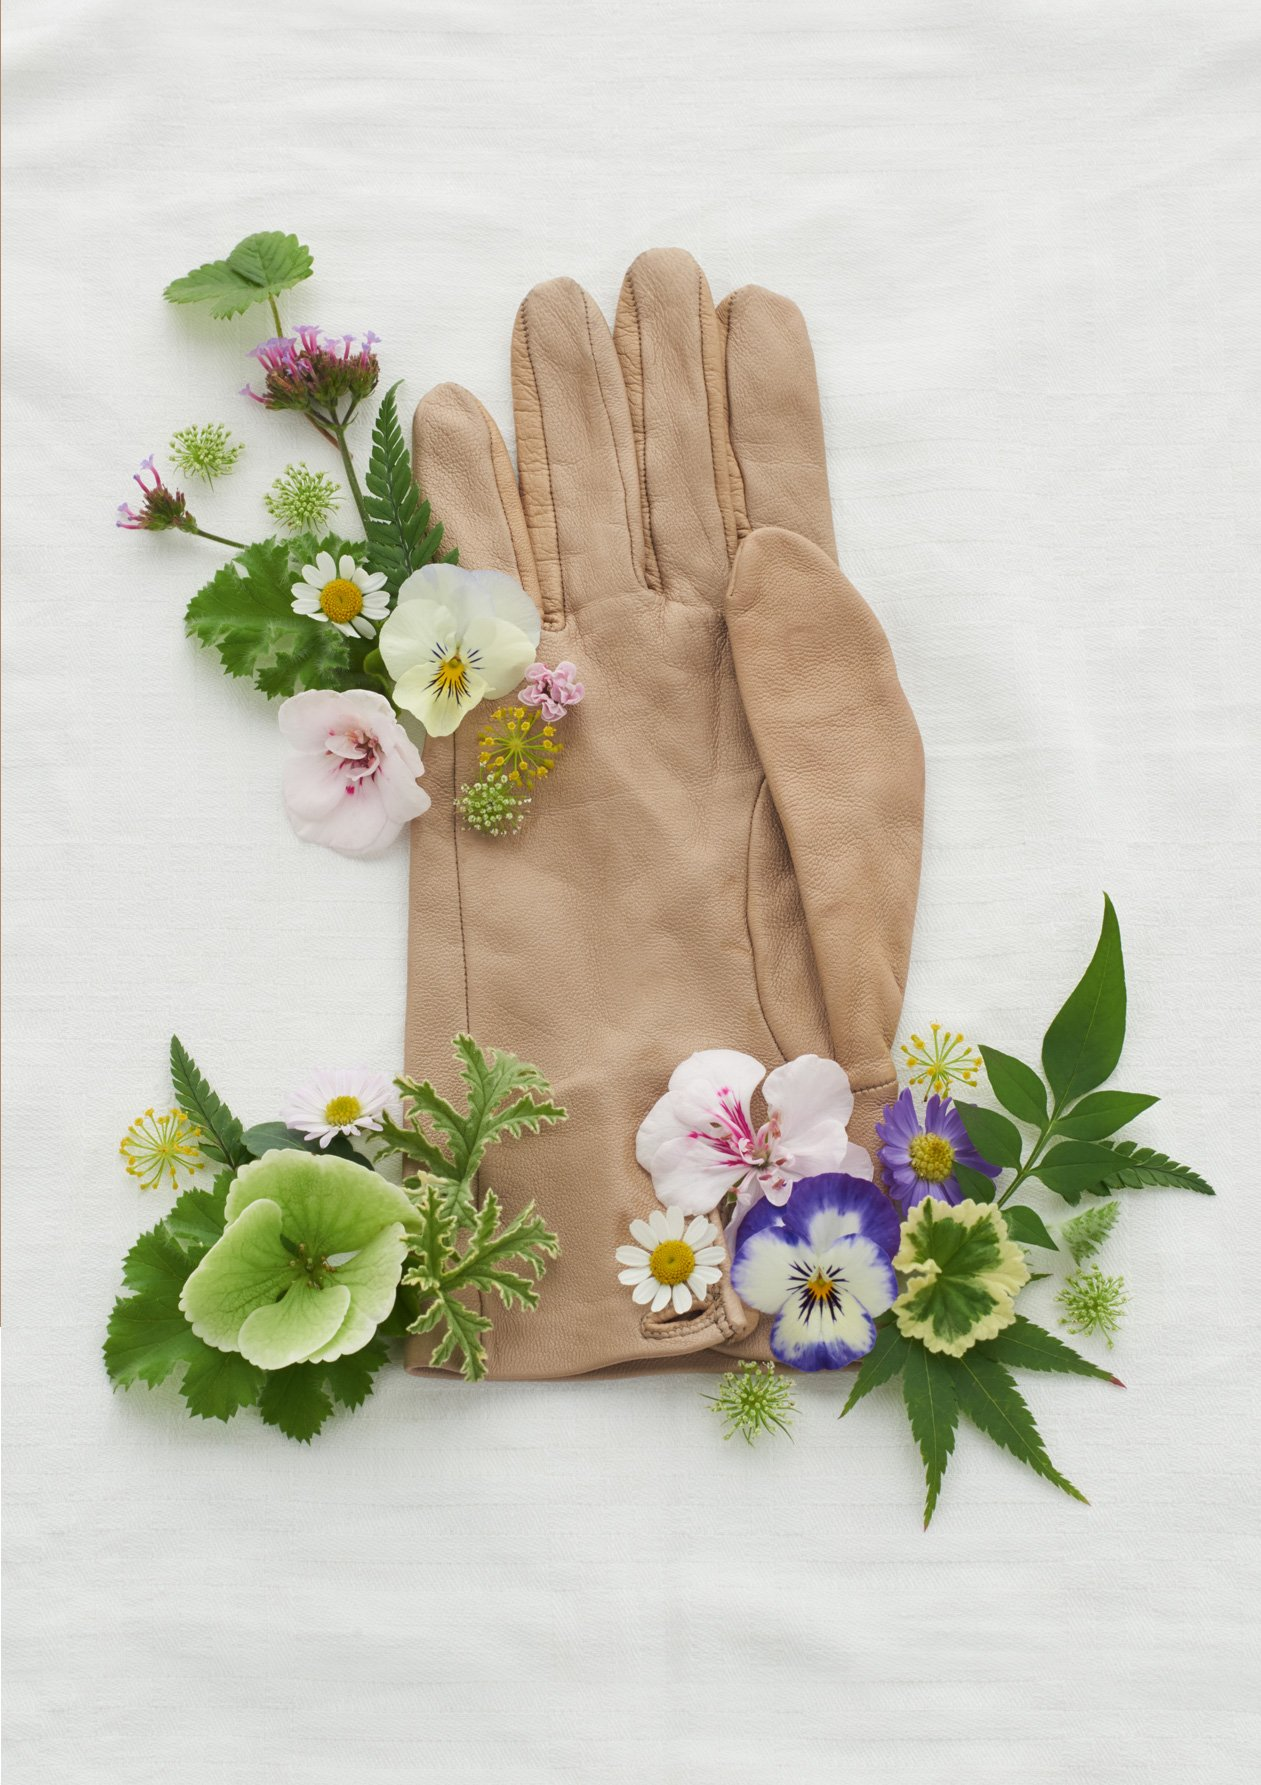 Bringing the outdoors inside wth wildflowers forraged from your garden, styled here with a tan leather gardening glove.